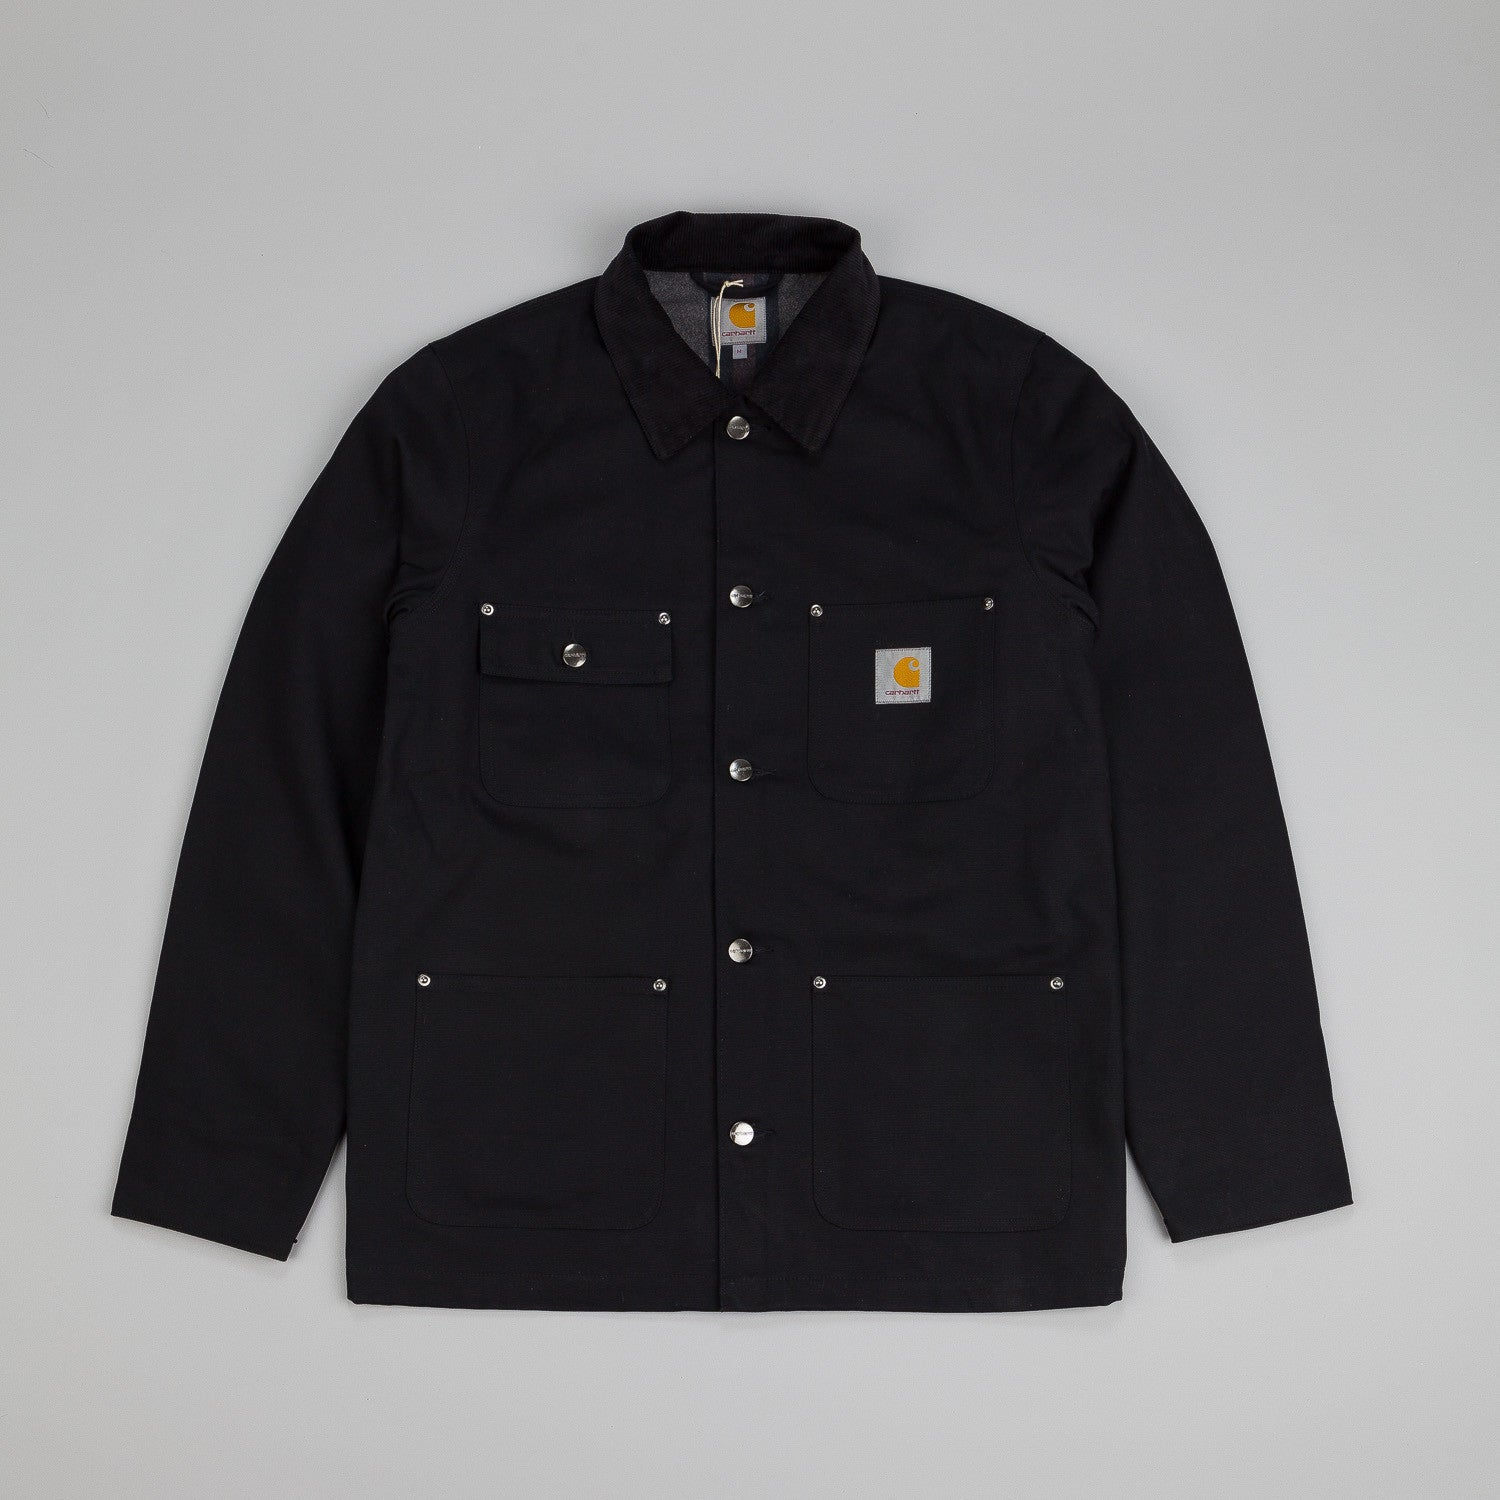 Carhartt Chore Coat Black Rigid